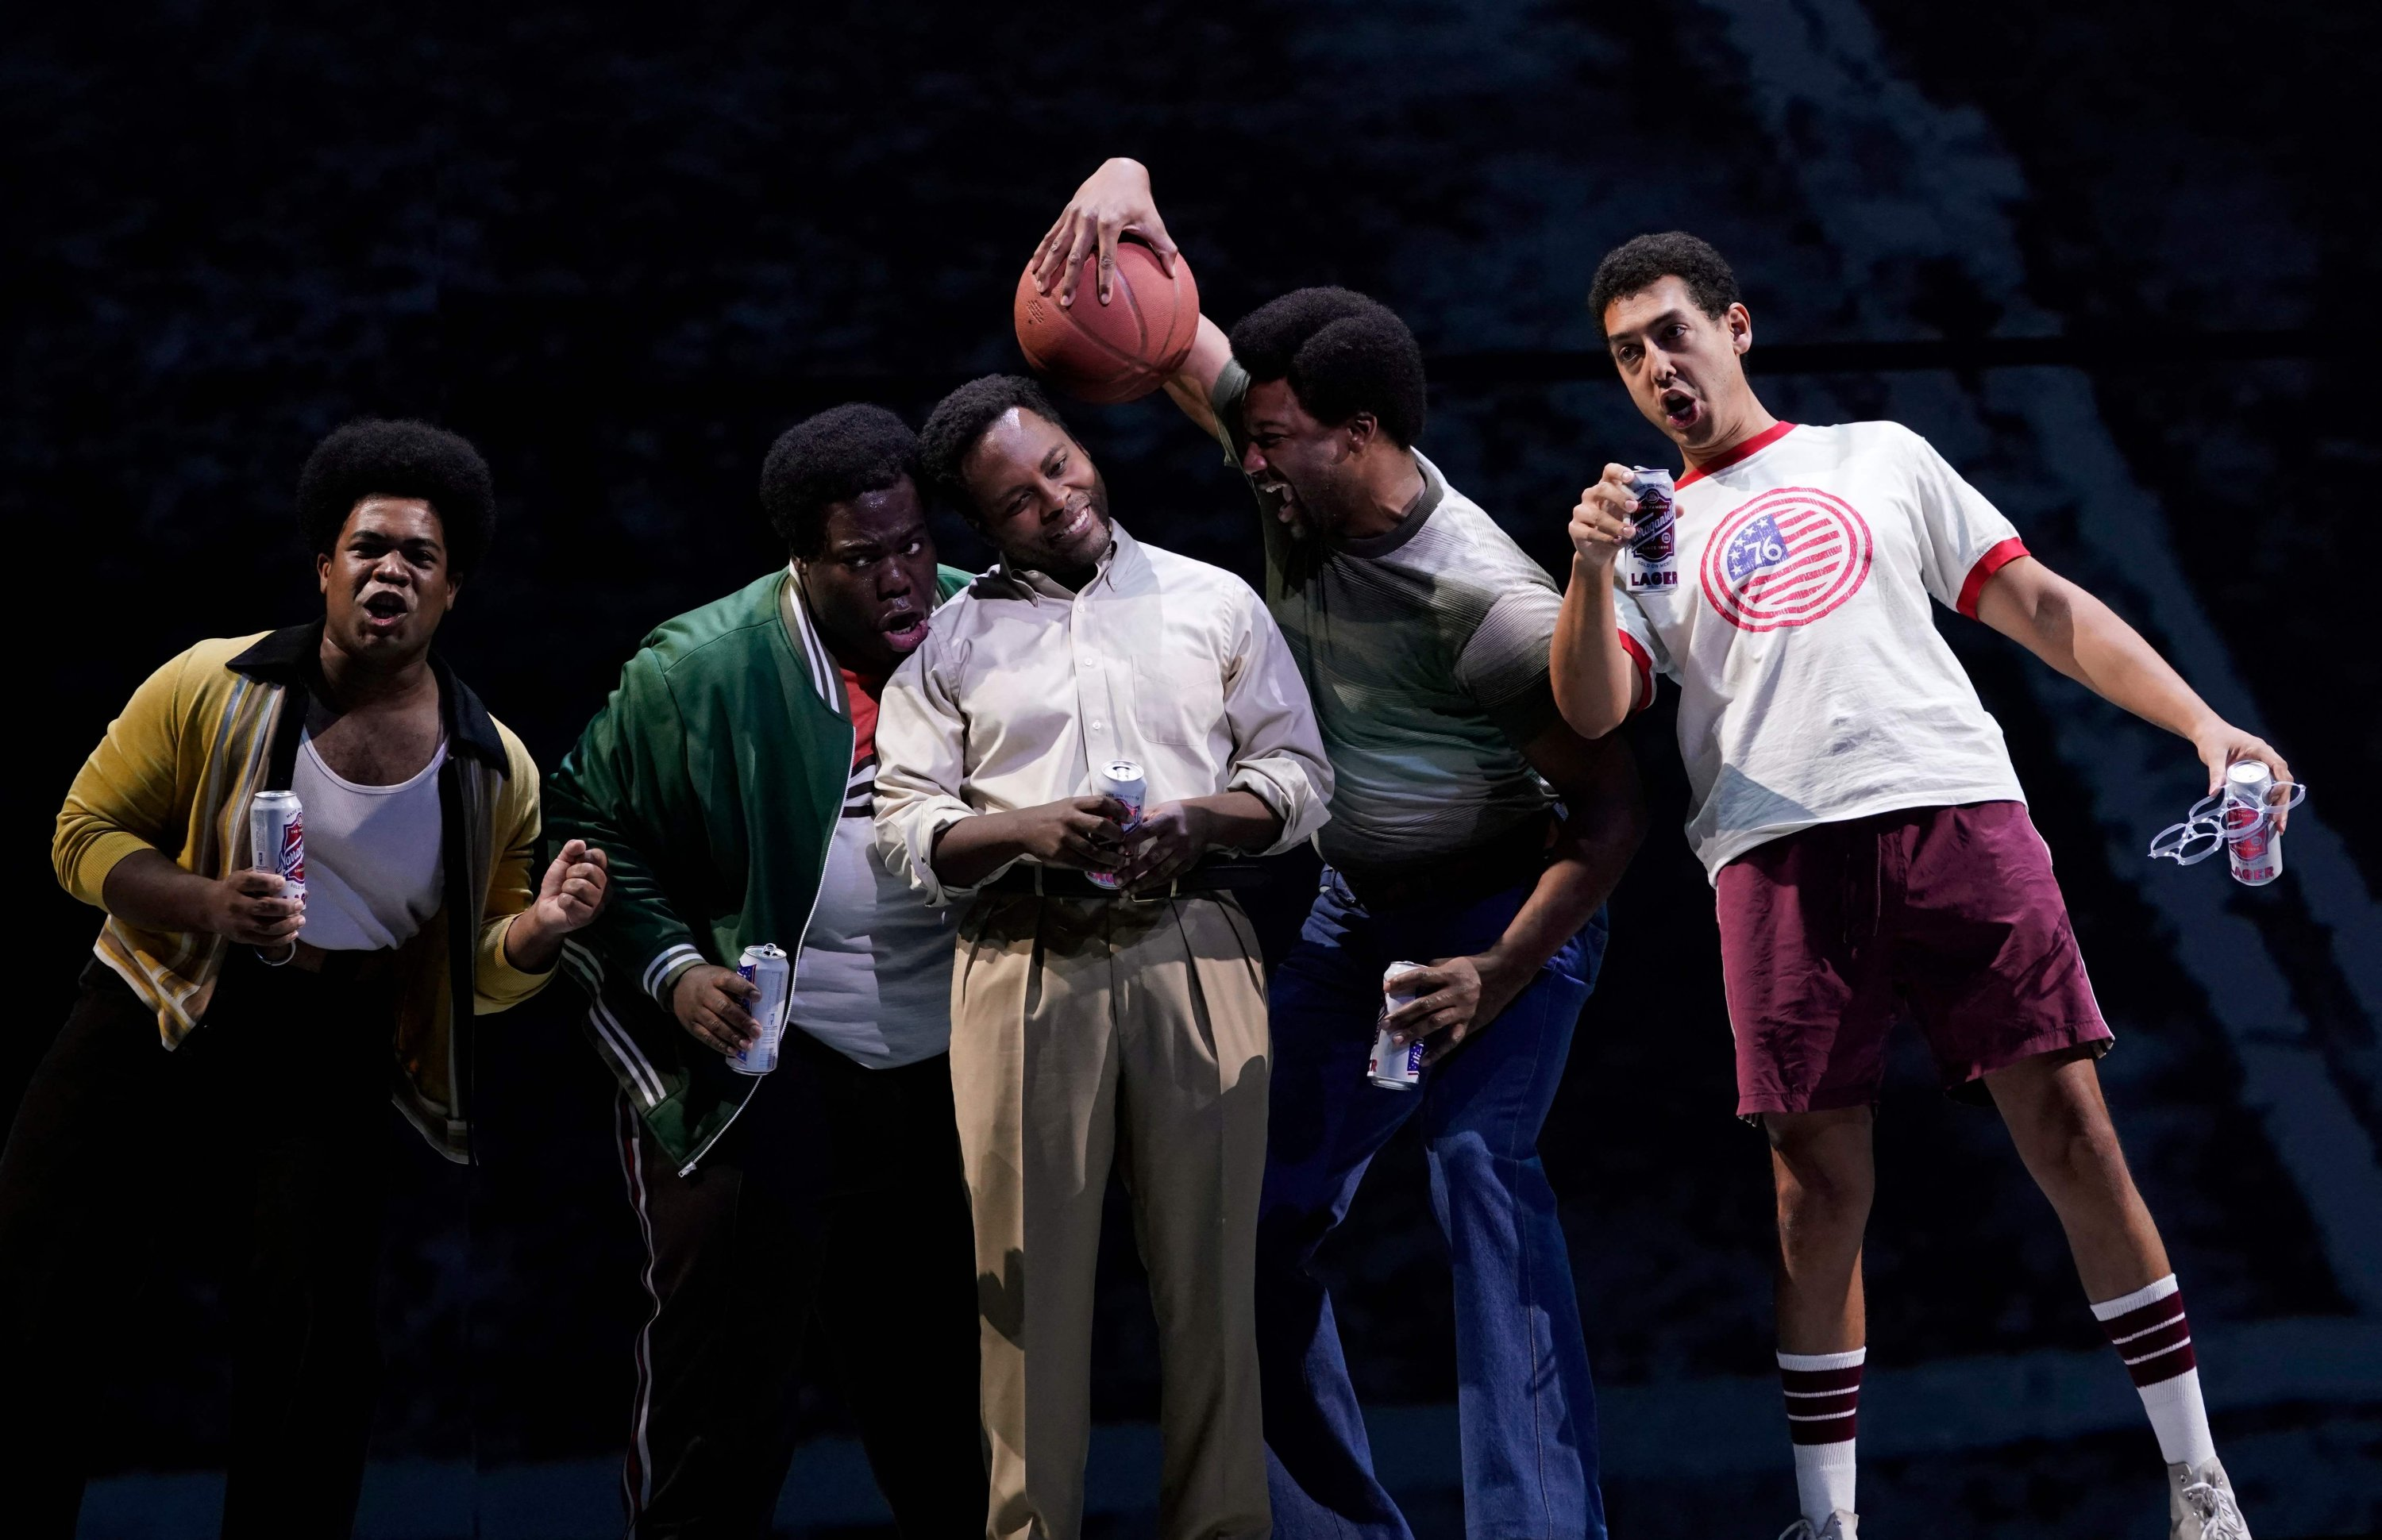 Actor Will Liverman (C) and cast members perform a scene during a rehearsal for Terence Blanchard's 'Fire Shut Up in My Bones,' at the Metropolitan Opera in New York, Sept. 24, 2021. (AFP Photo)